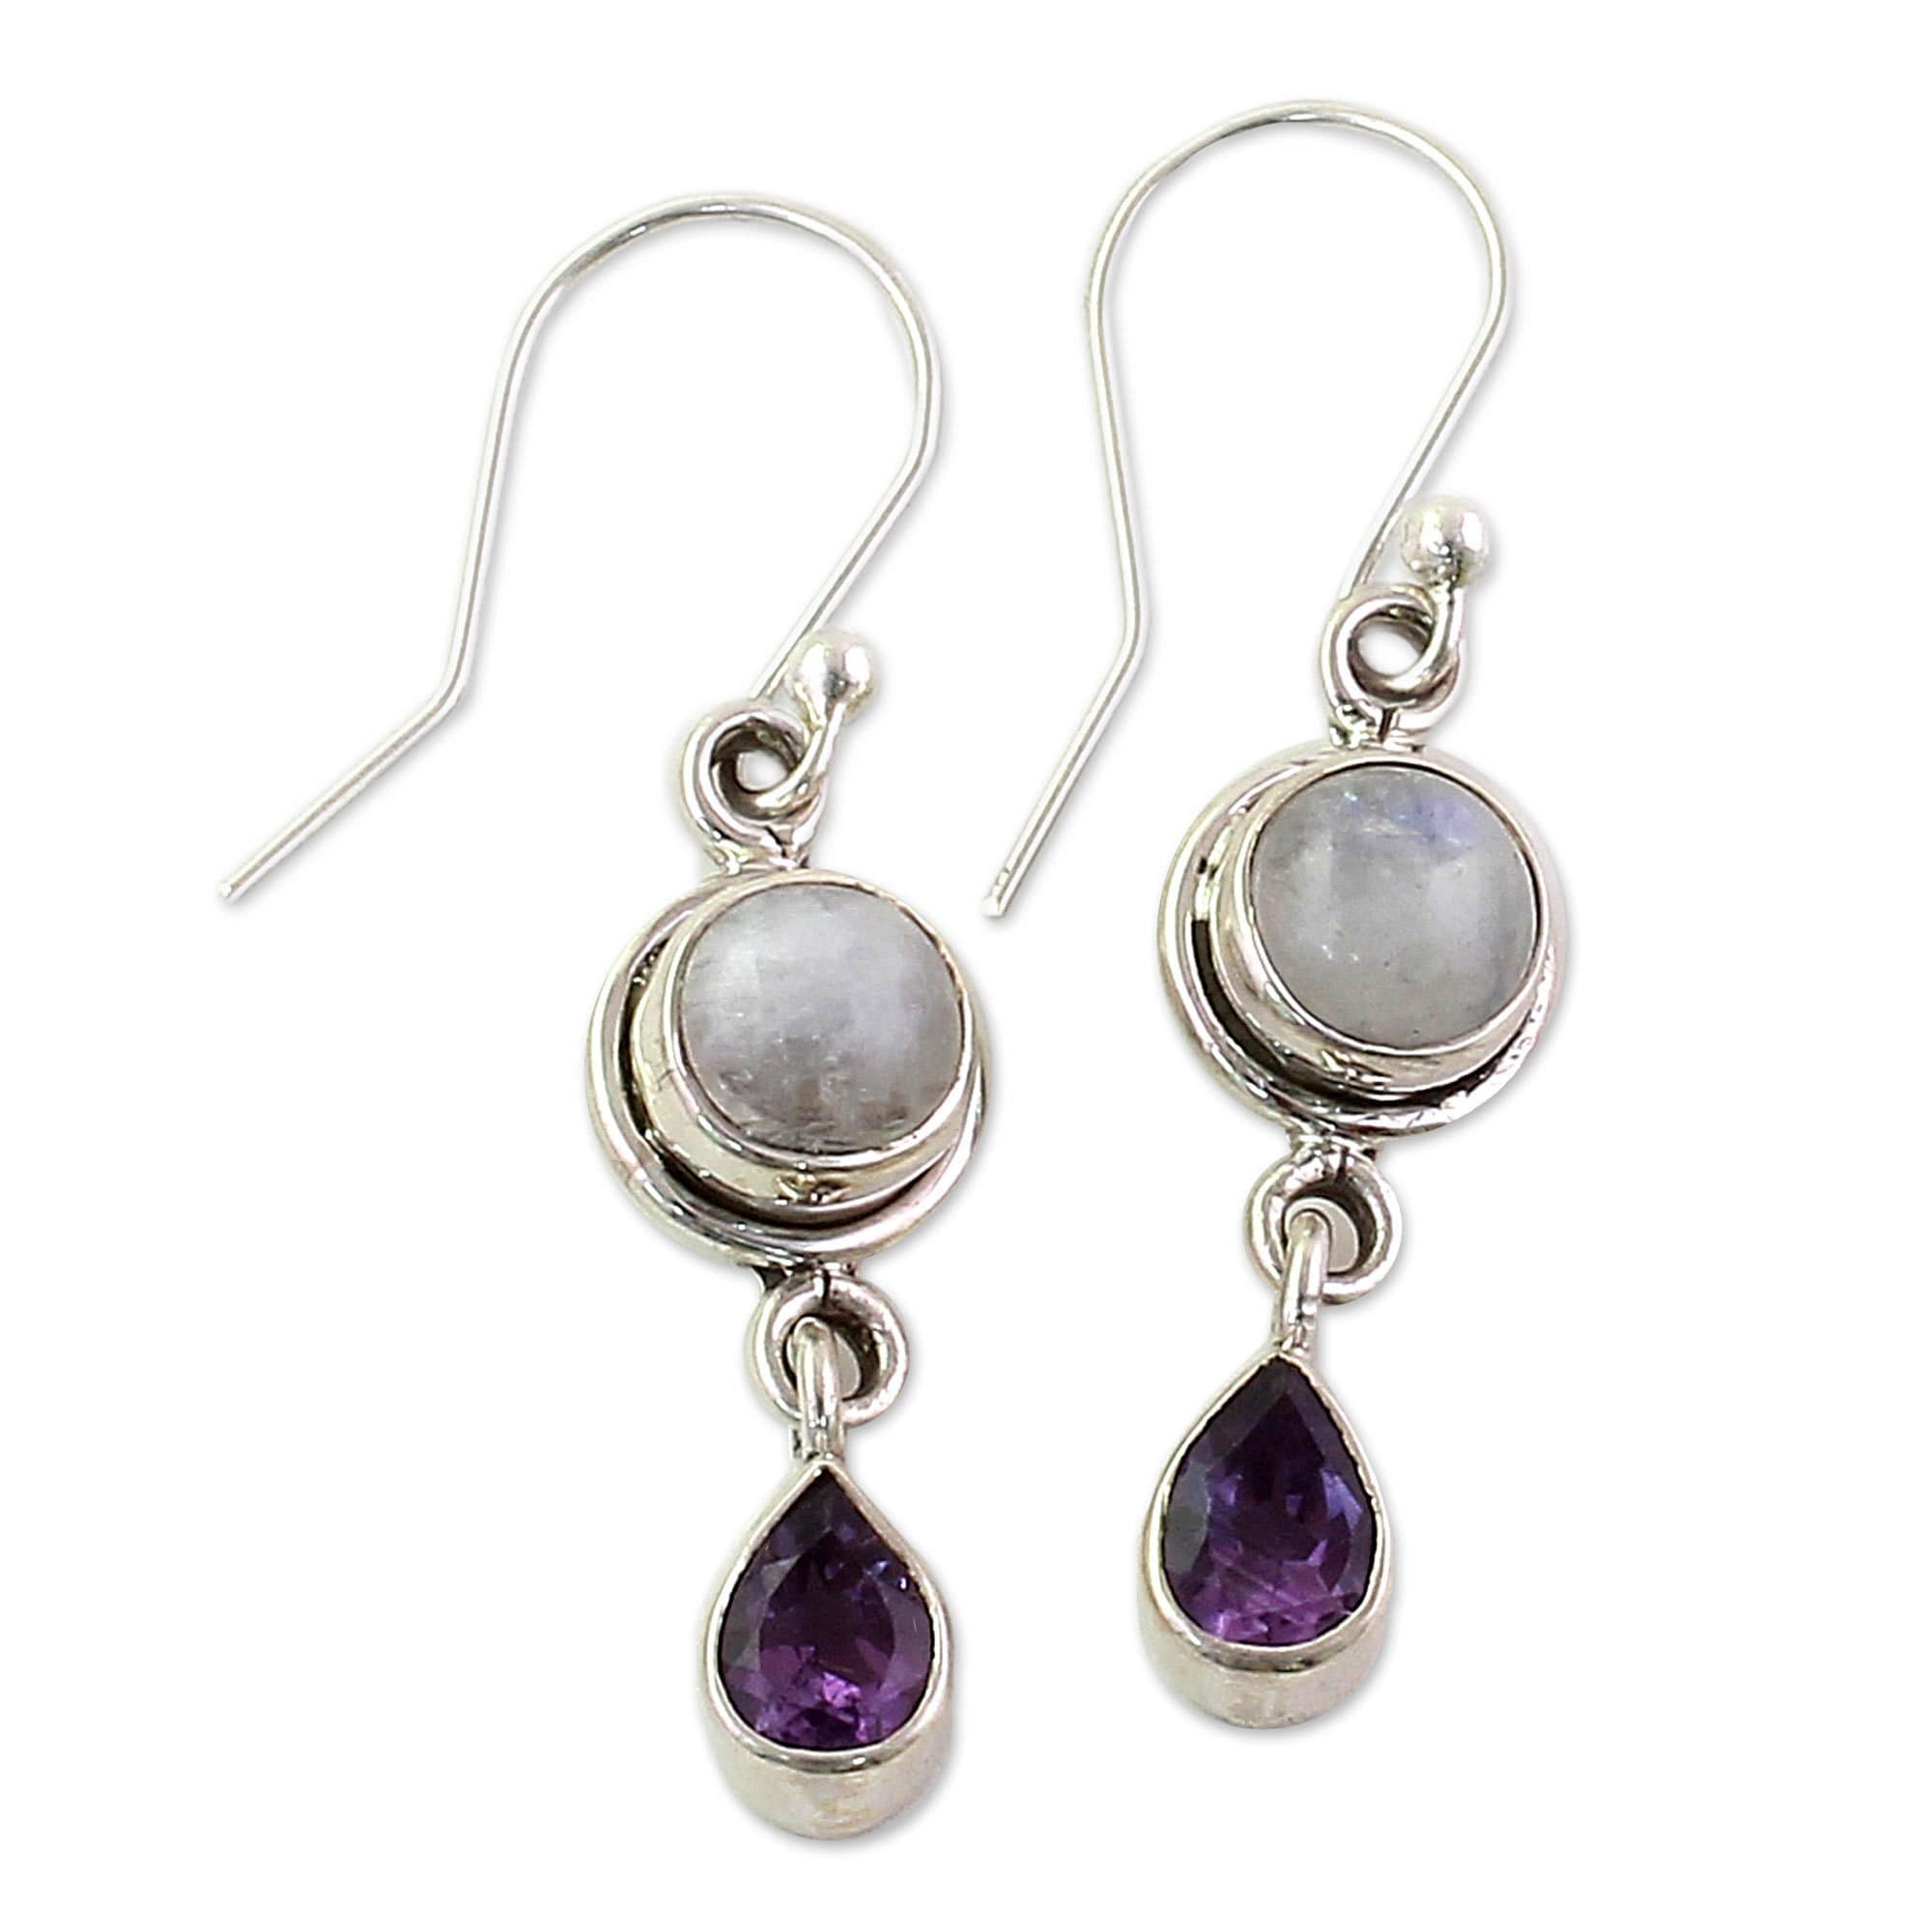 earrings sterling swarovski asp purple crystal silver drop stud hoop p velvet elements